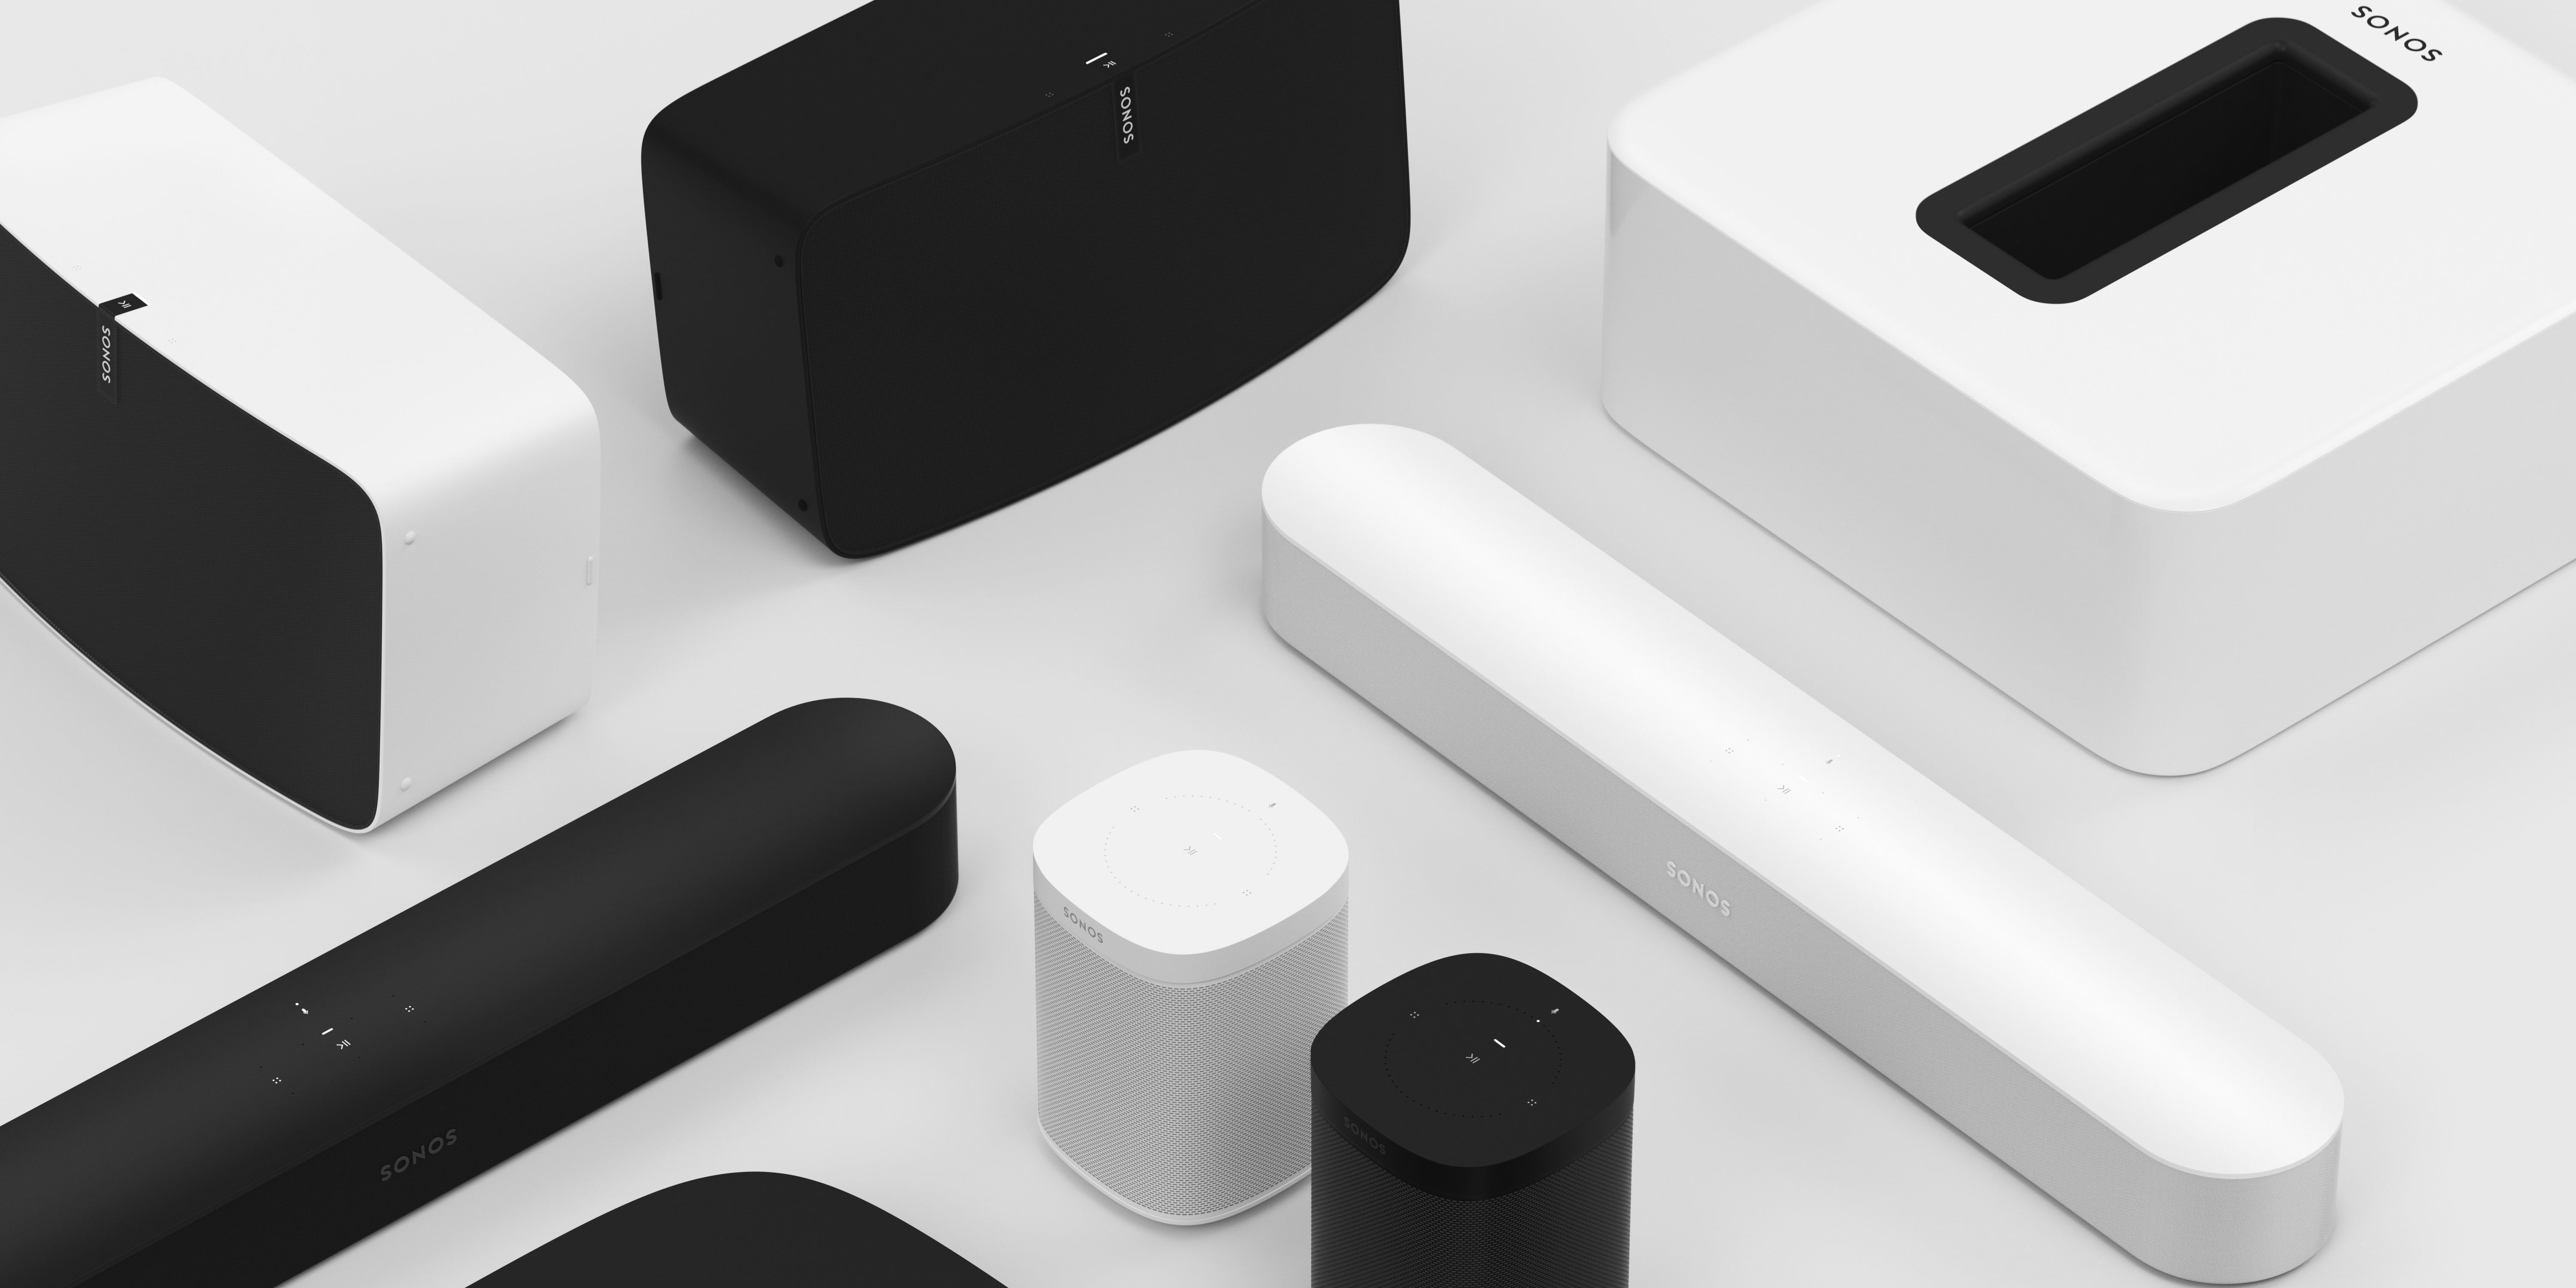 Sonos Ebay Sale Hits All Time Lows Apple Watch Bands More 9to5mac